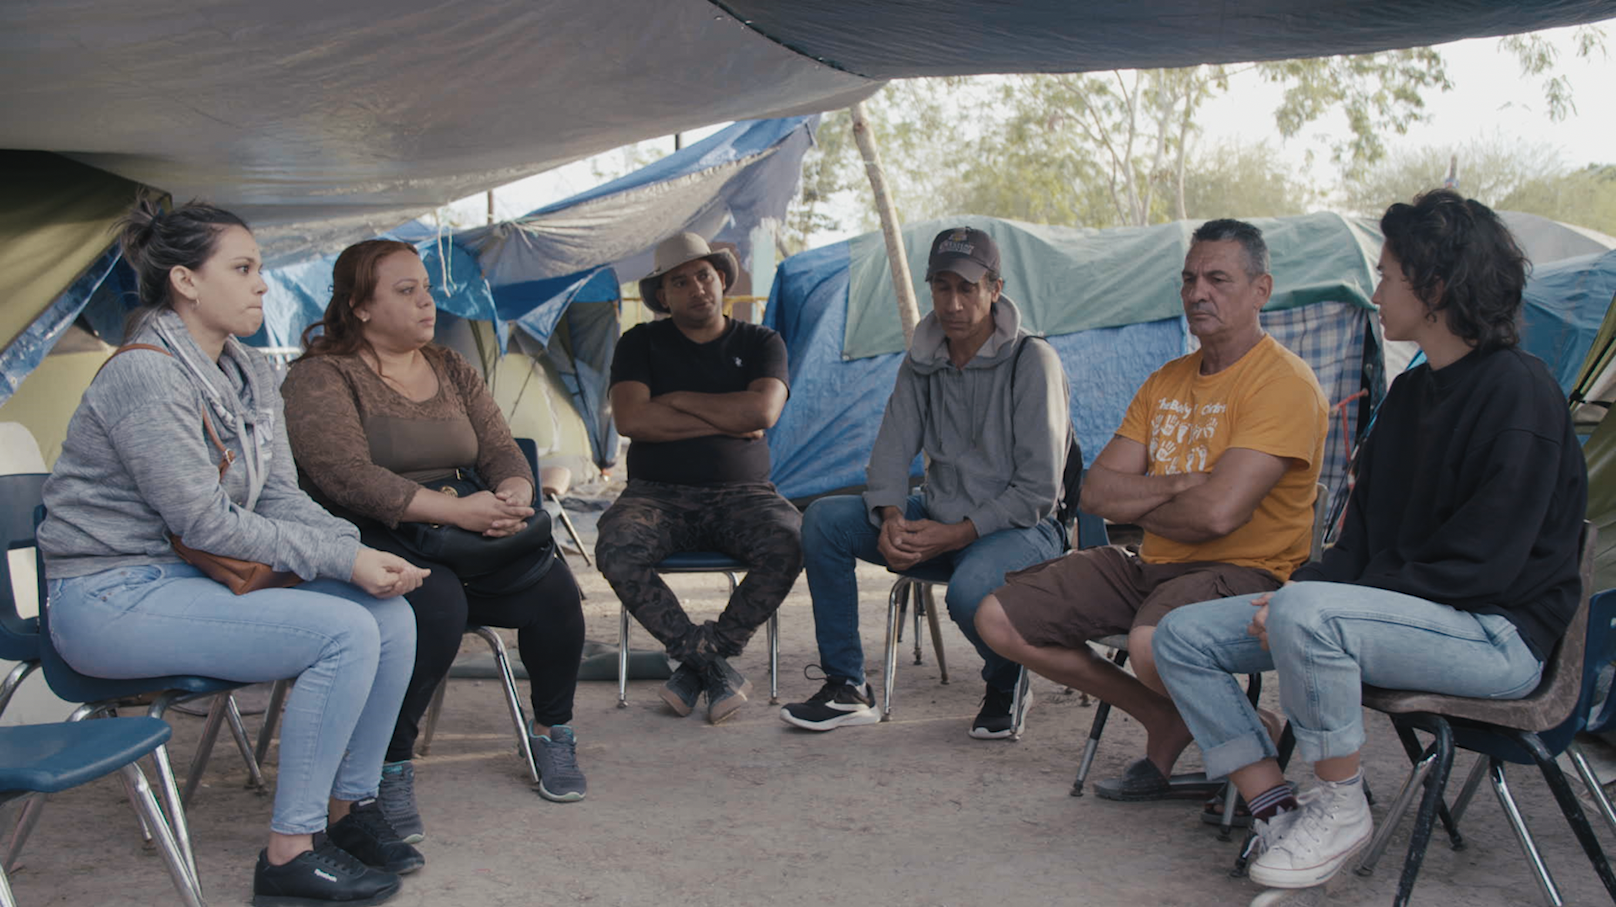 Exclusive Clip: 'Vice' Investigates How the Juárez Cartel Is Profiting off the U.S. 'Remain in Mexico' Policy